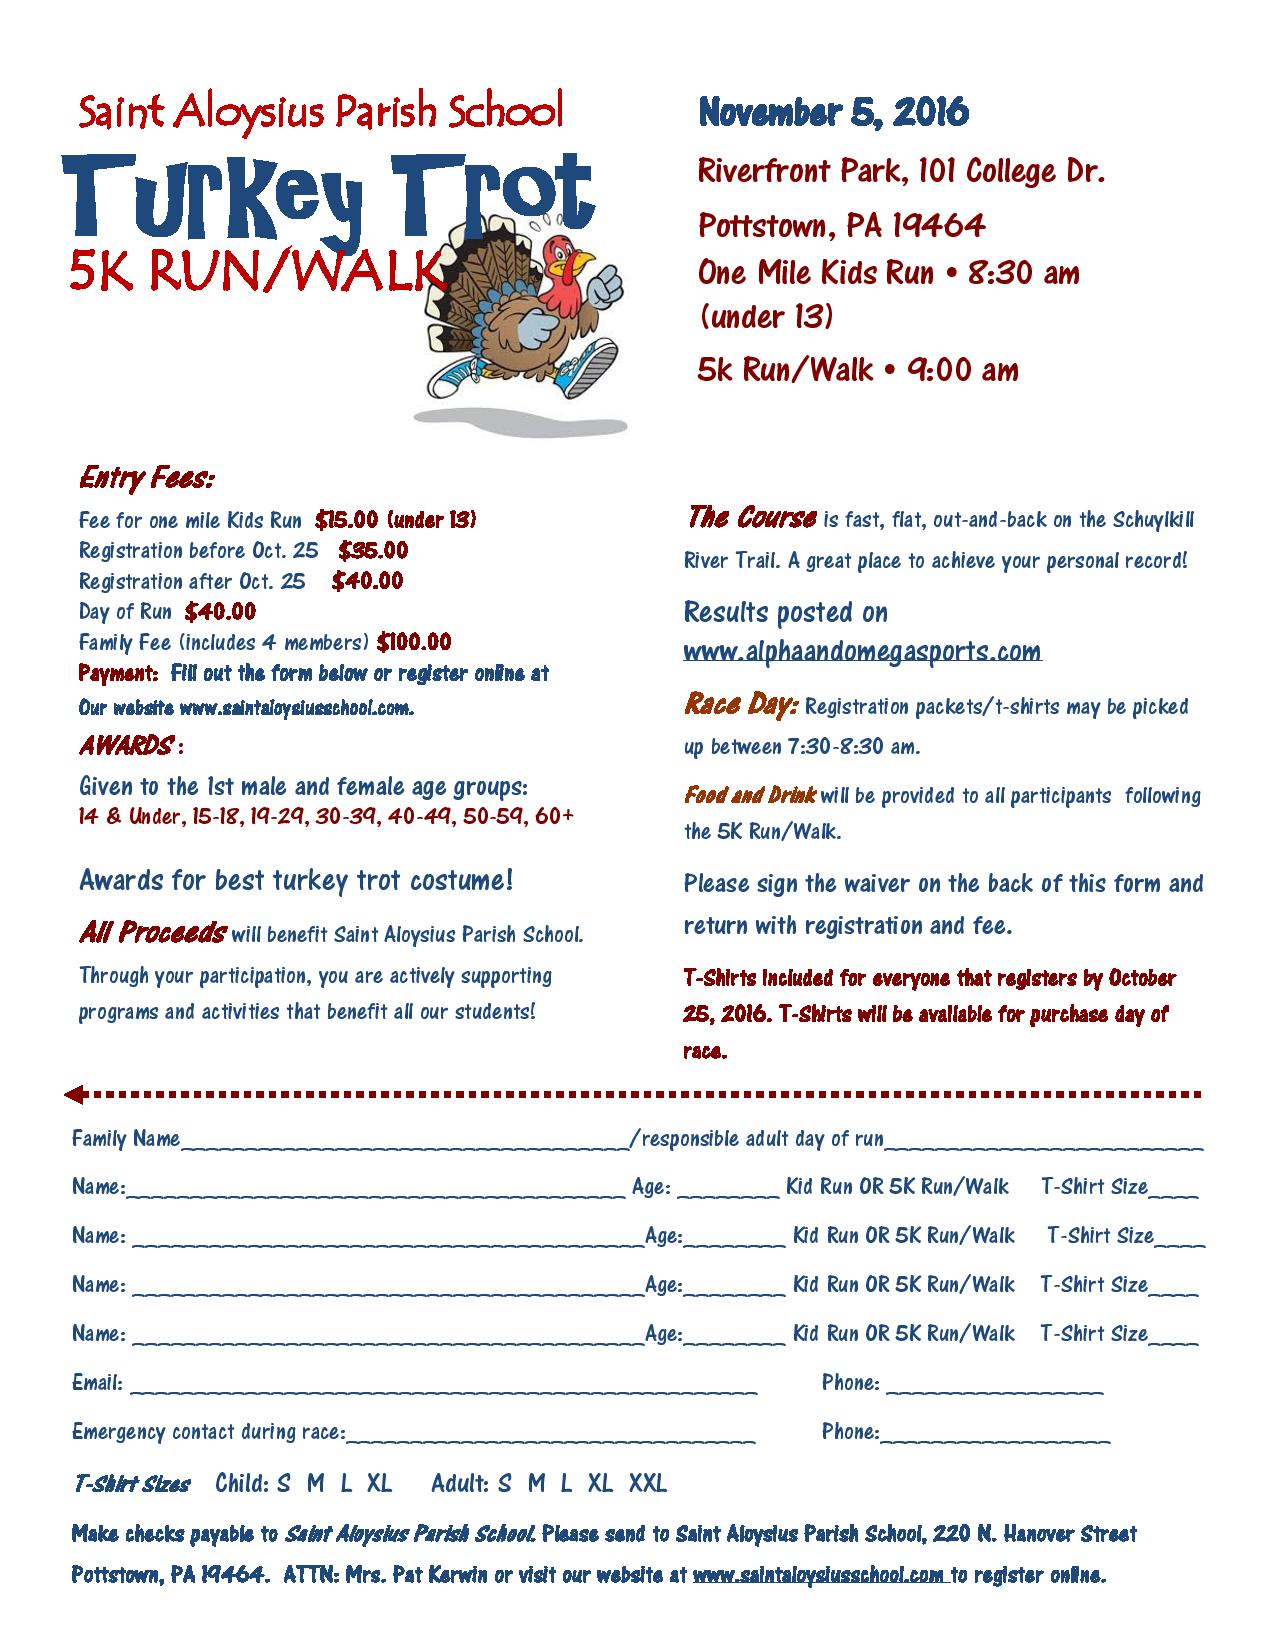 st. aloysius turkey trot 5k run/walk | pottstown foundation